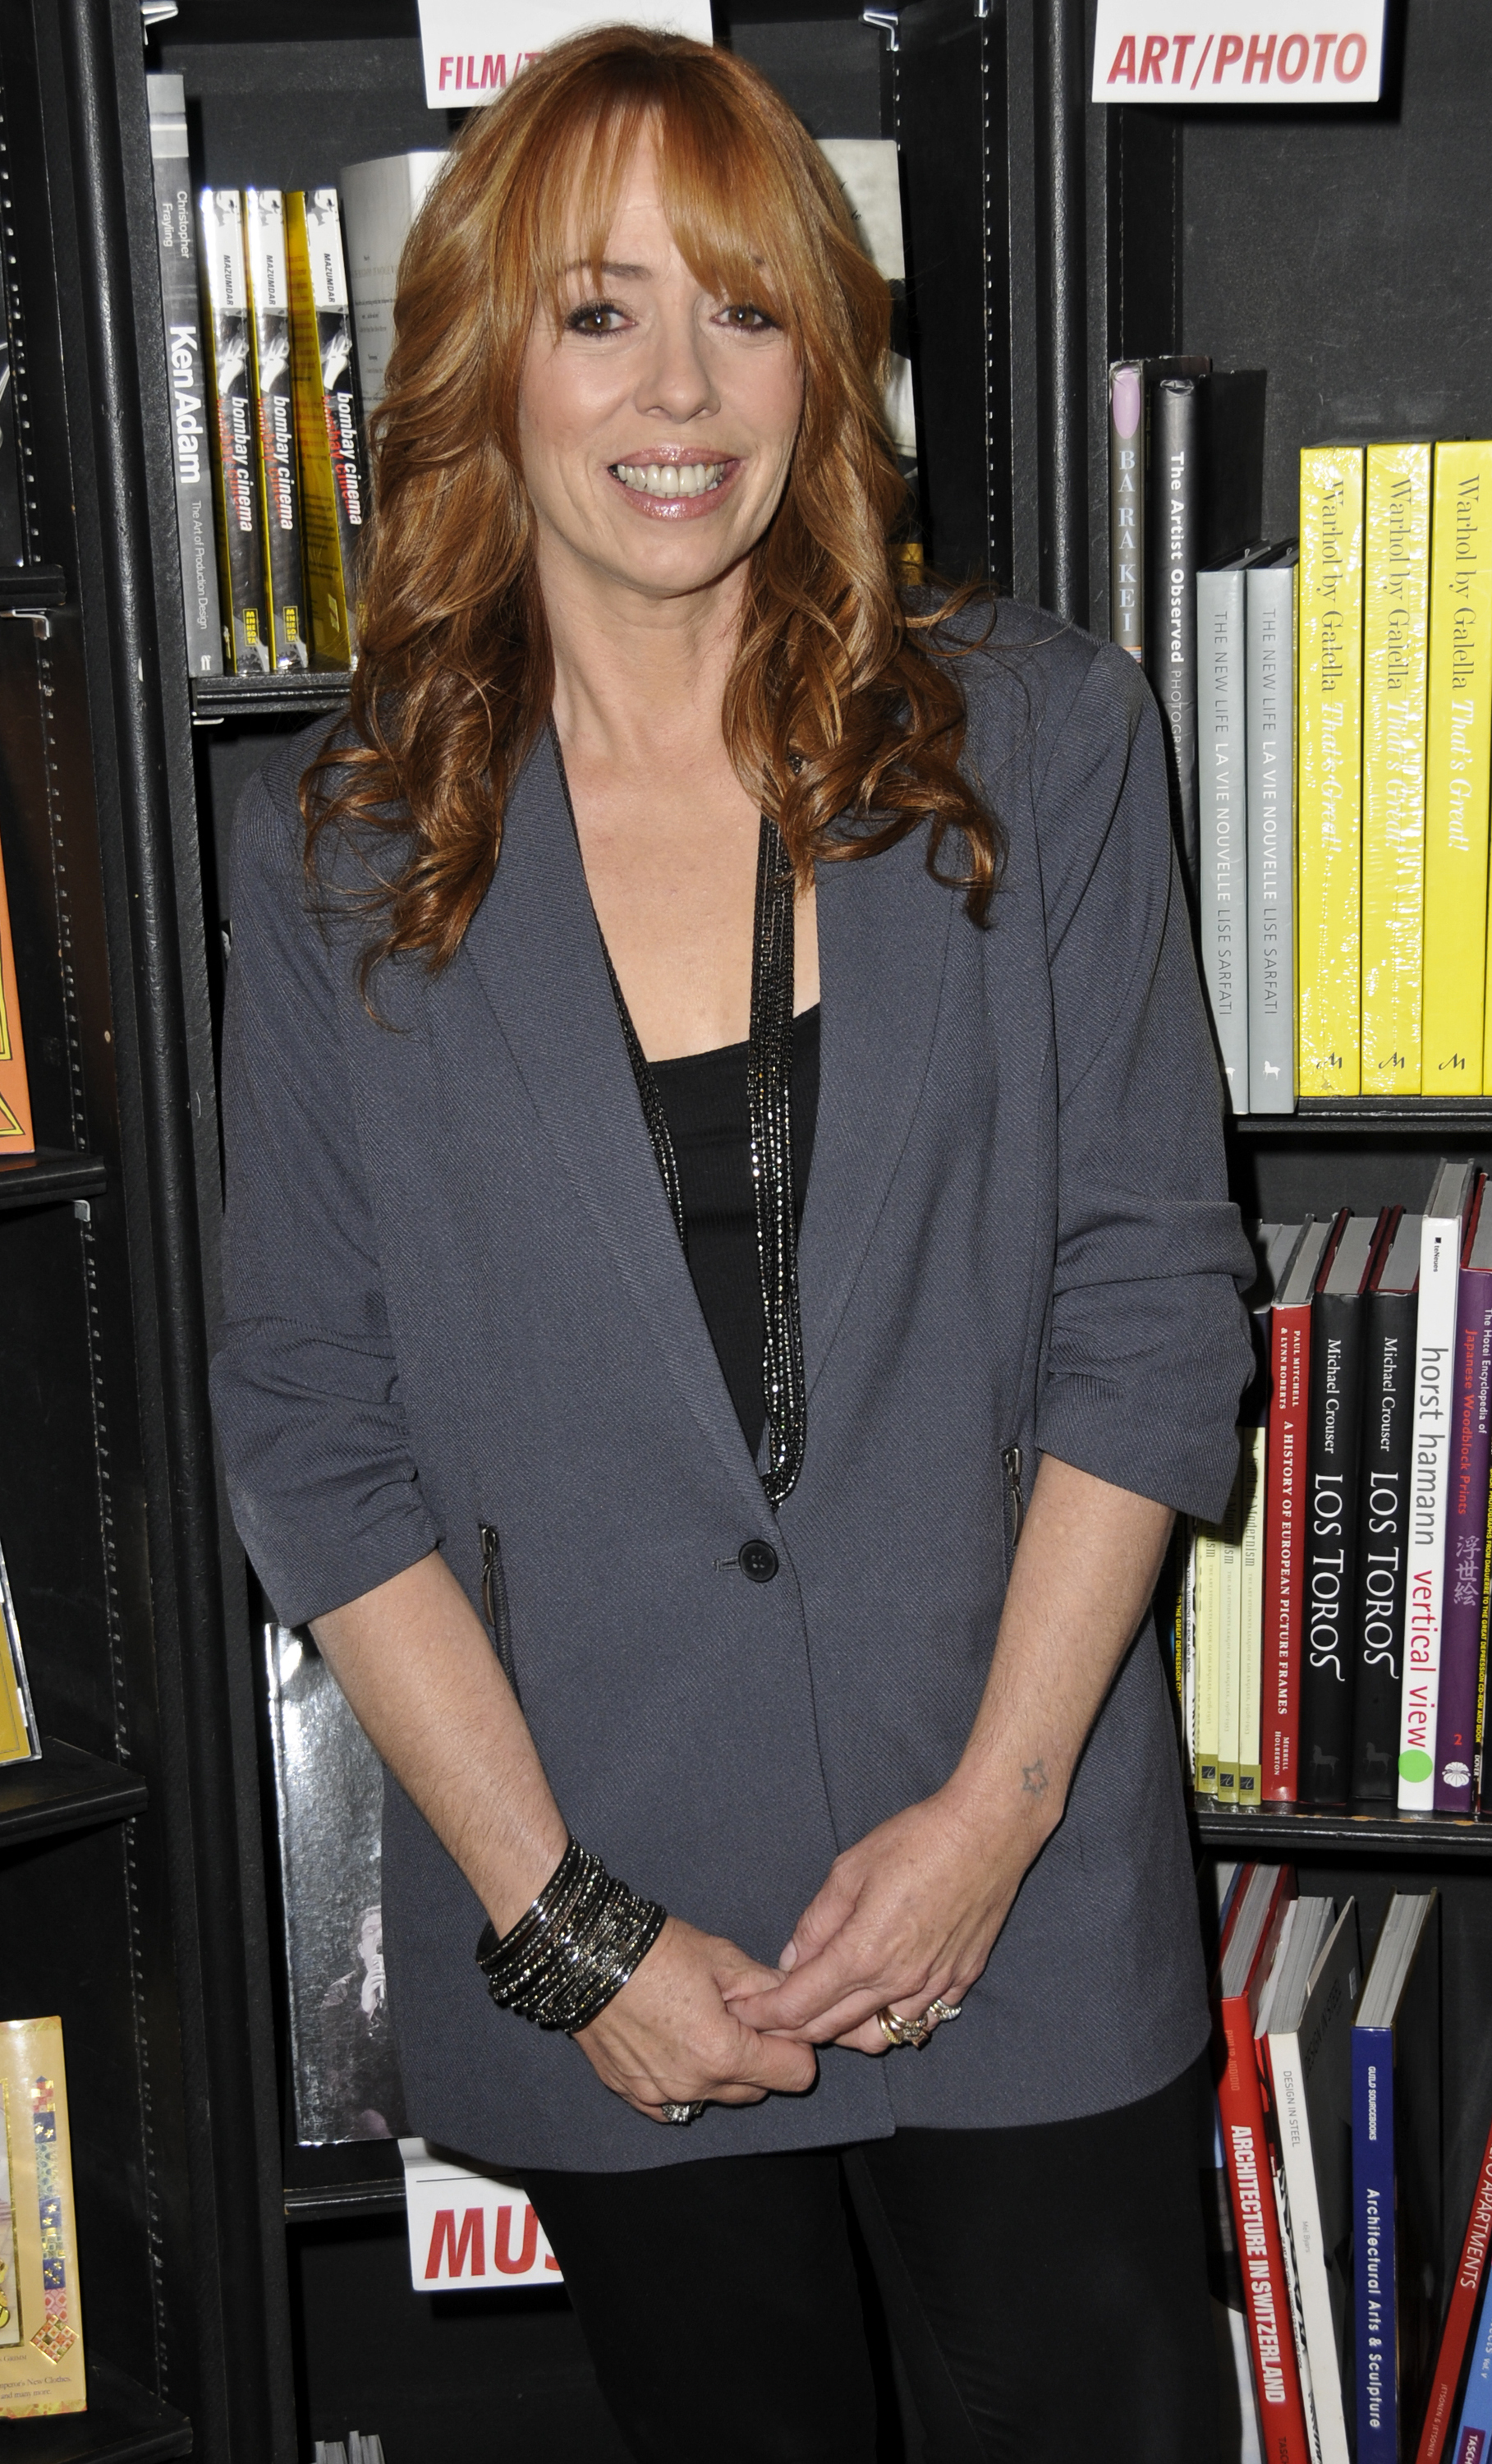 Mackenzie Phillips opens up about her father, drug addiction with Oprah